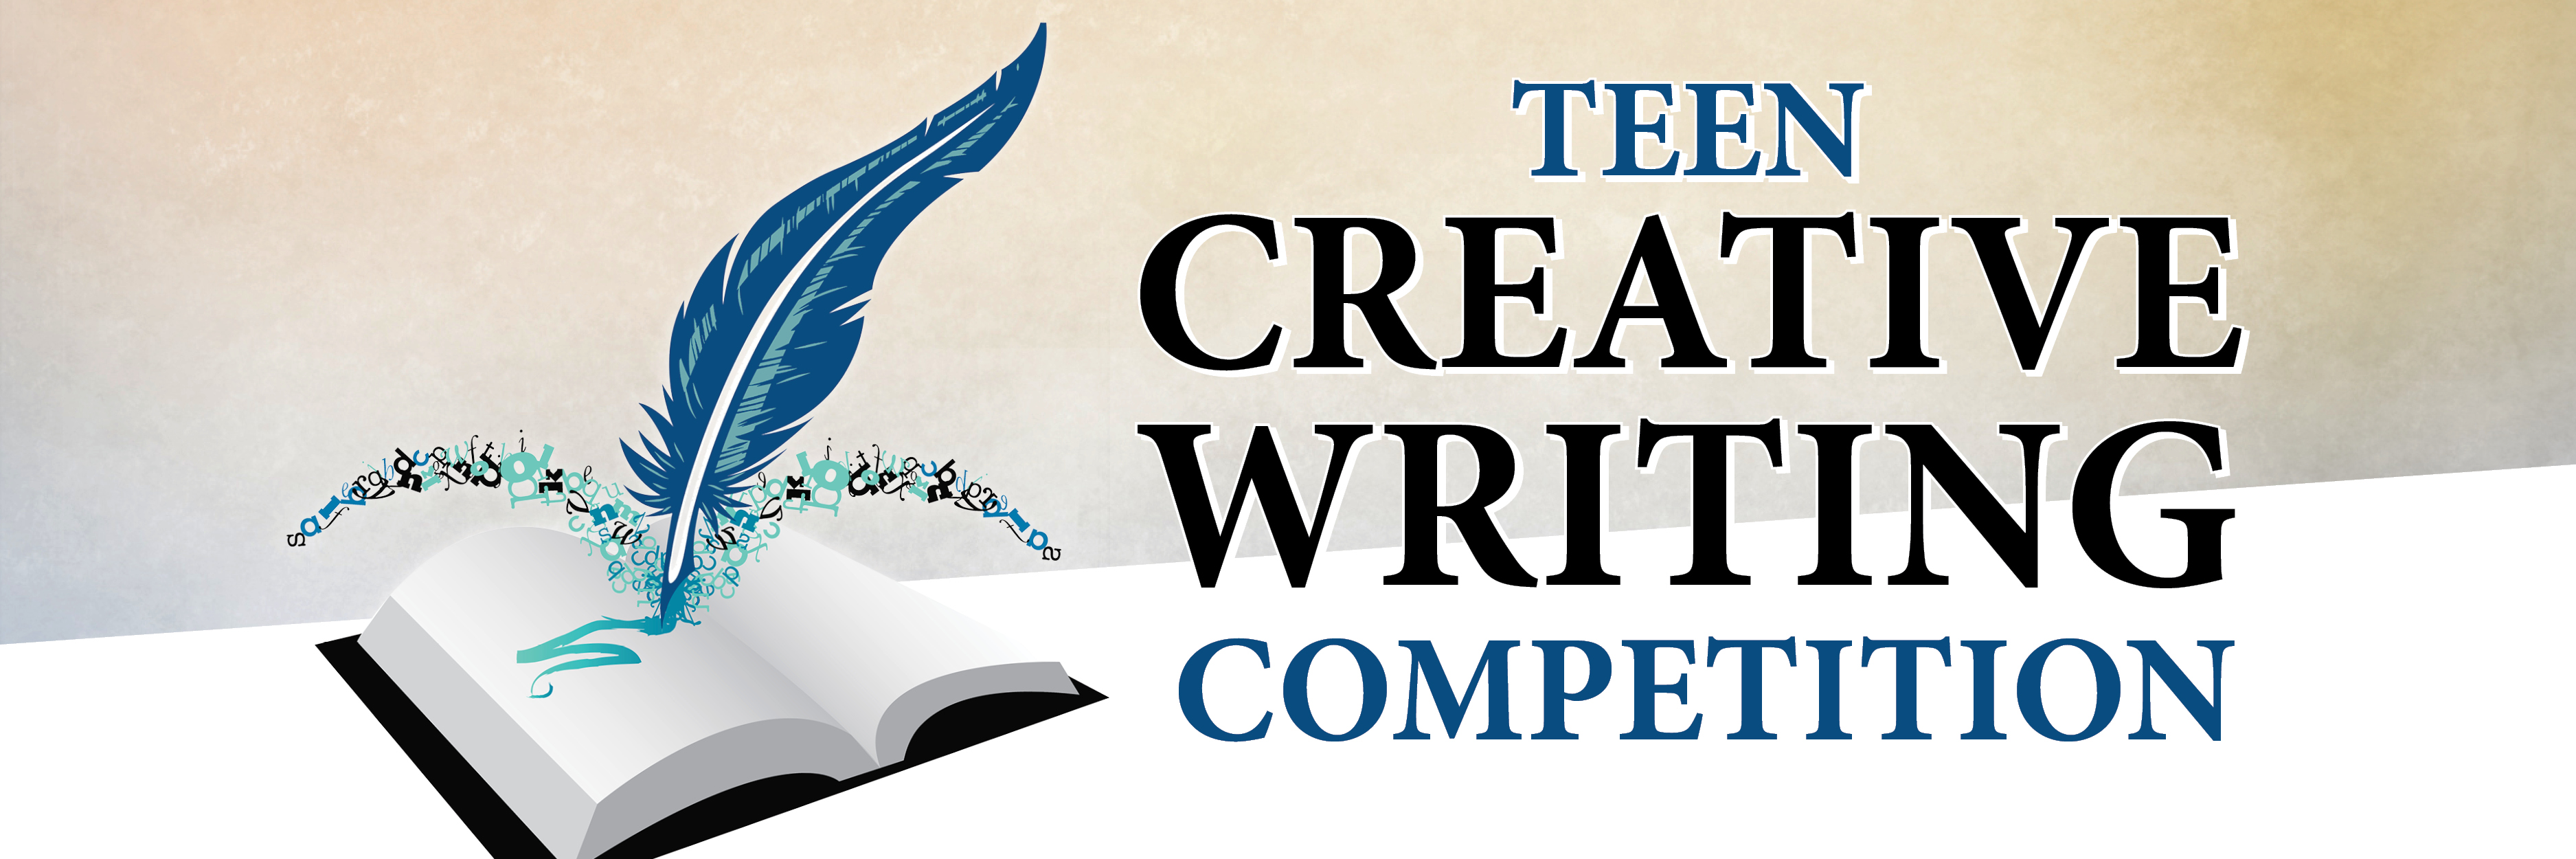 019 Teen Scene Farmington Community Library Tcw Banner Essay Writing Contest Rubrics For Nutrition Month Criteria Tips Objectives Philippines Mechanics Guidelines Incredible Competition College Students By Essayhub Sample Full